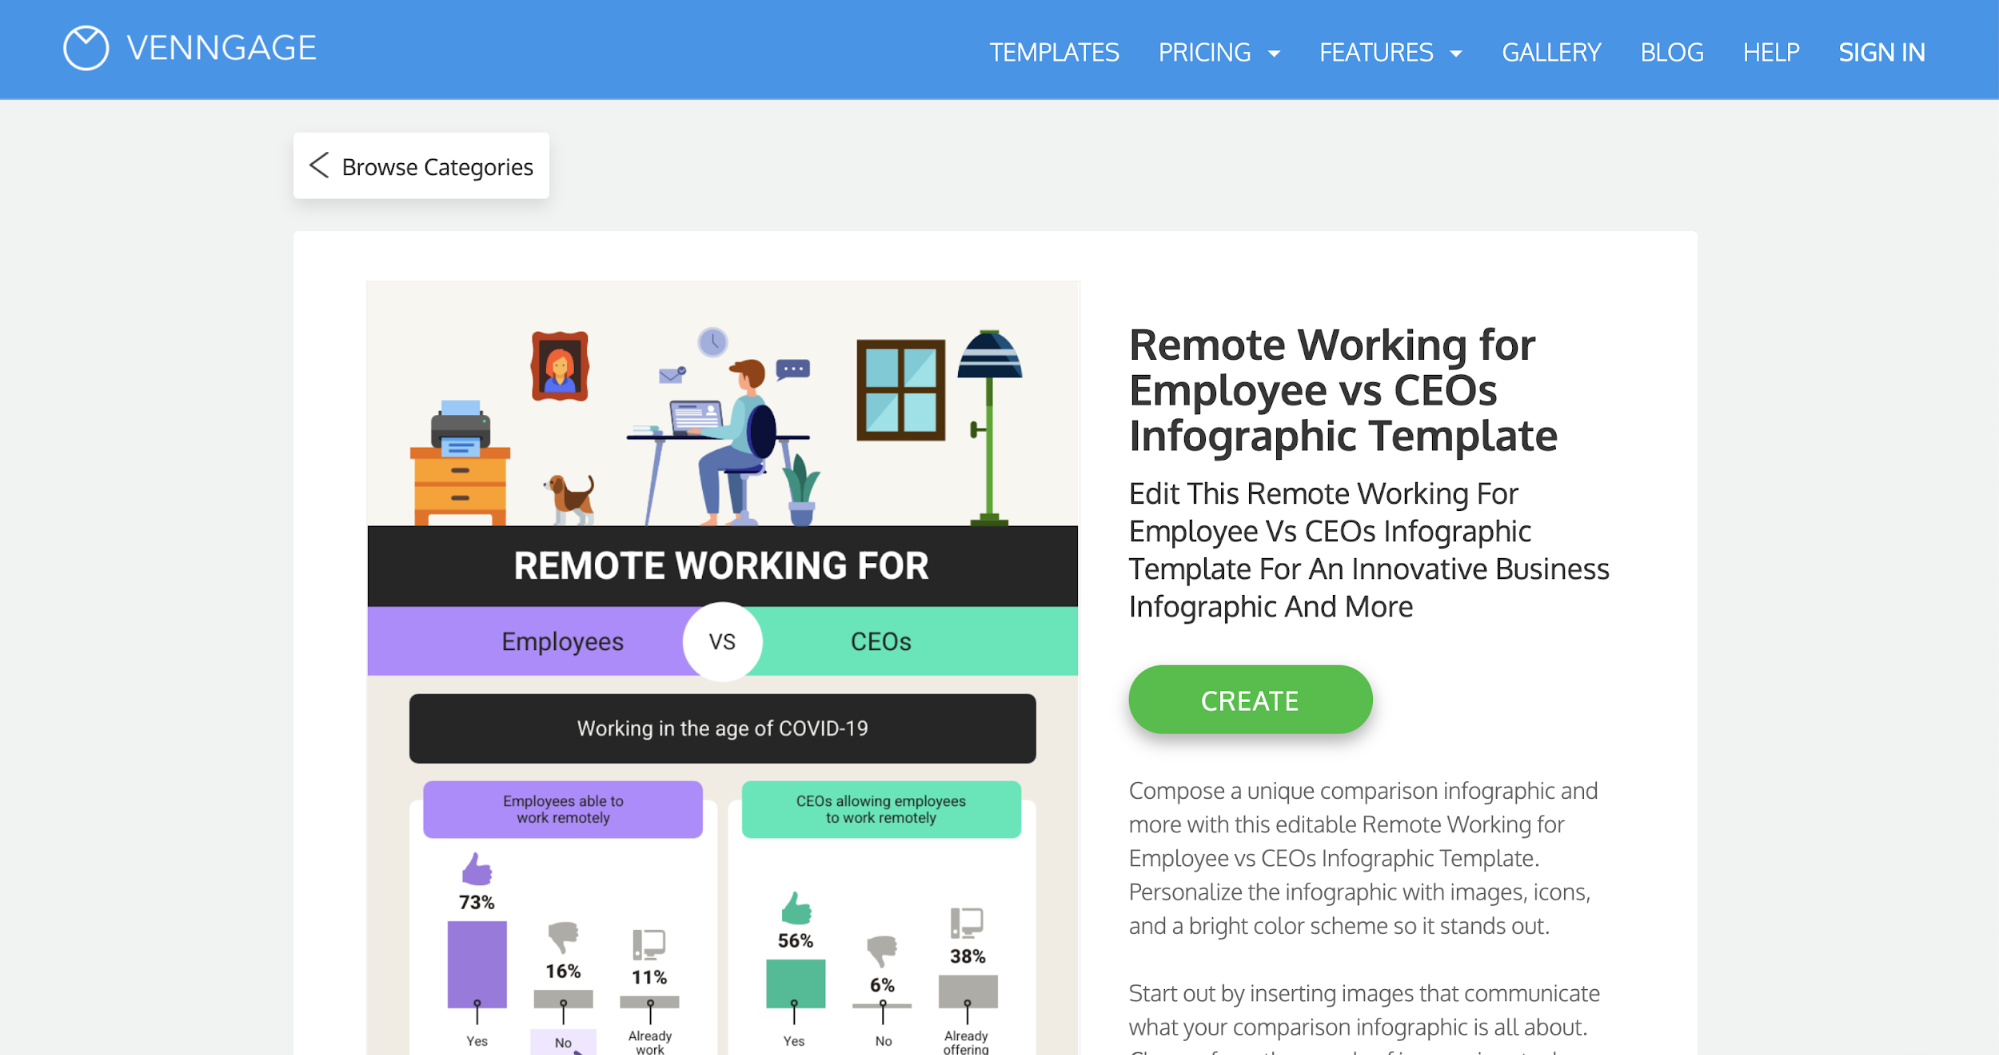 Venngage vs Visme Venngage Remote Working Infographic Preview